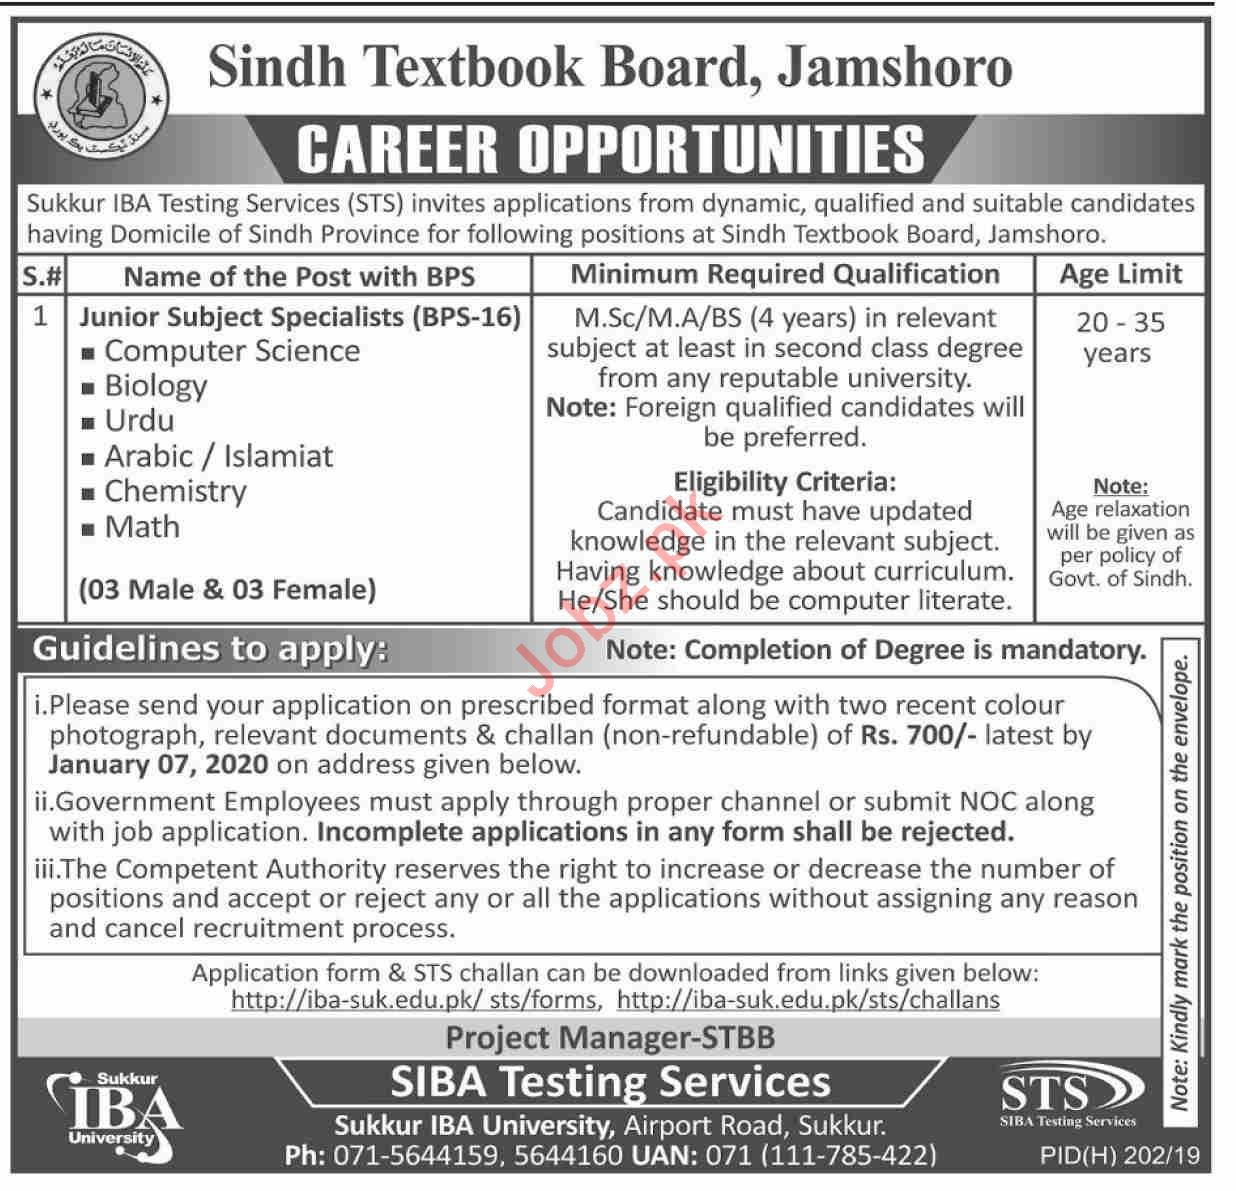 Sindh Text Book Board Jobs 2020 in Jamshoro